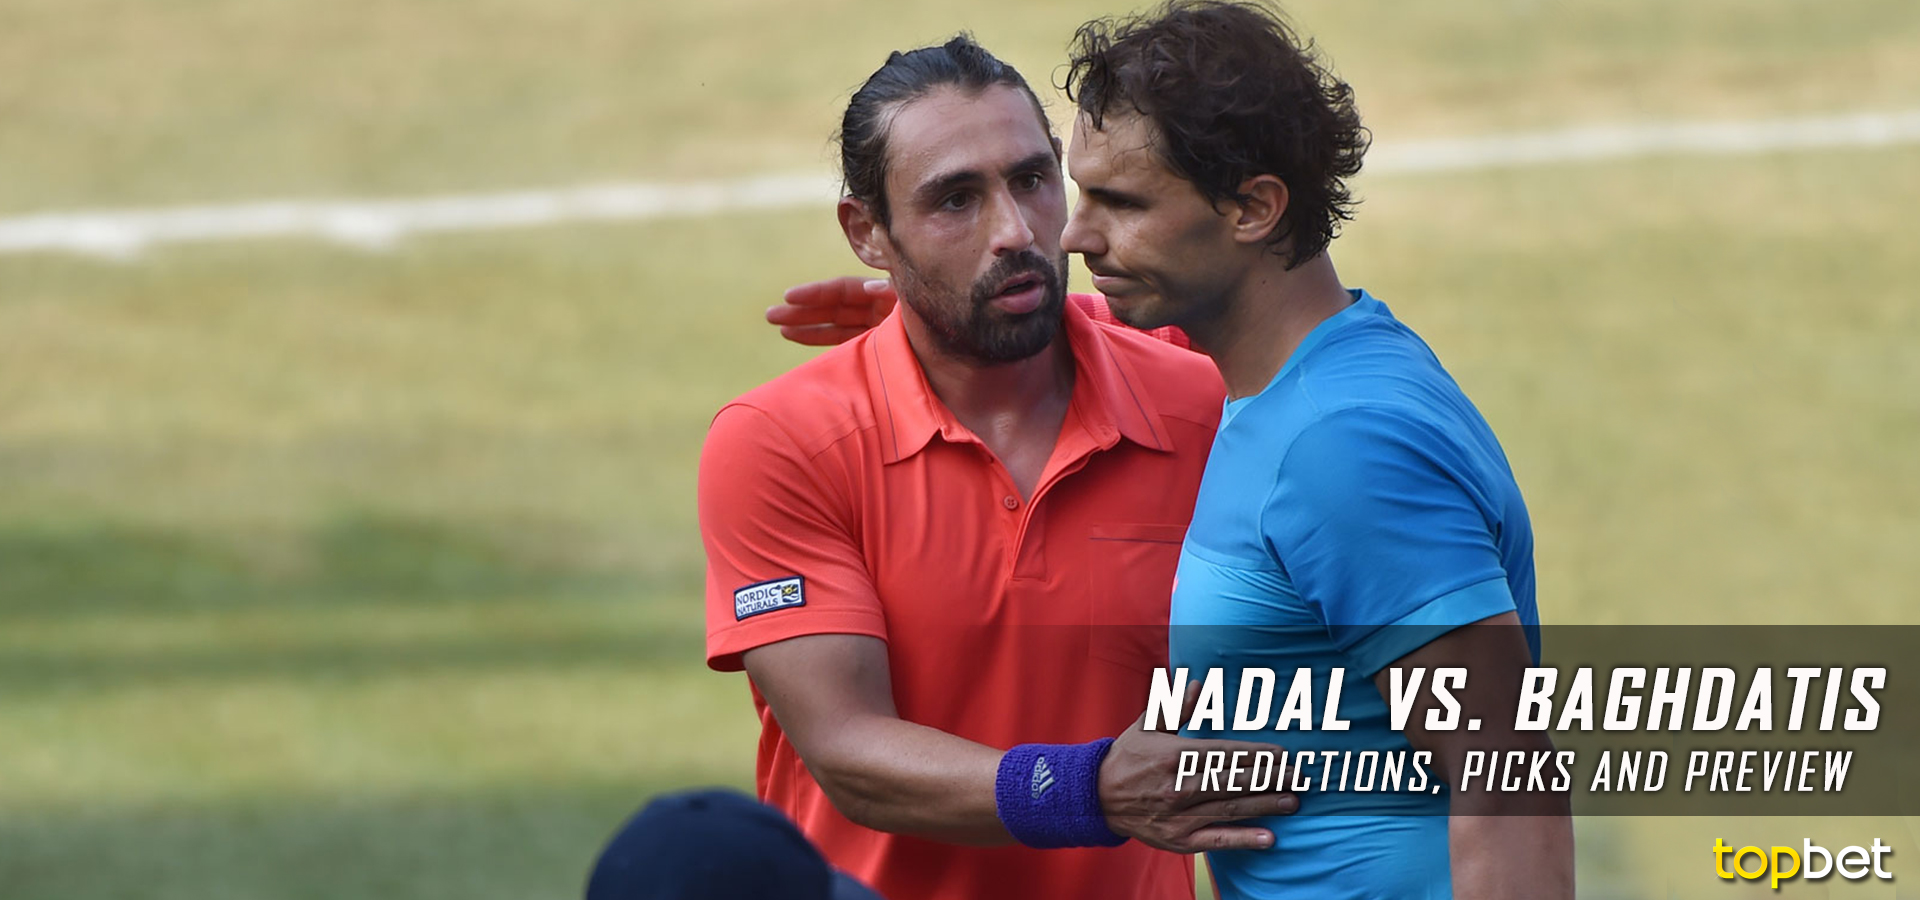 bet at home open 2017 nadal